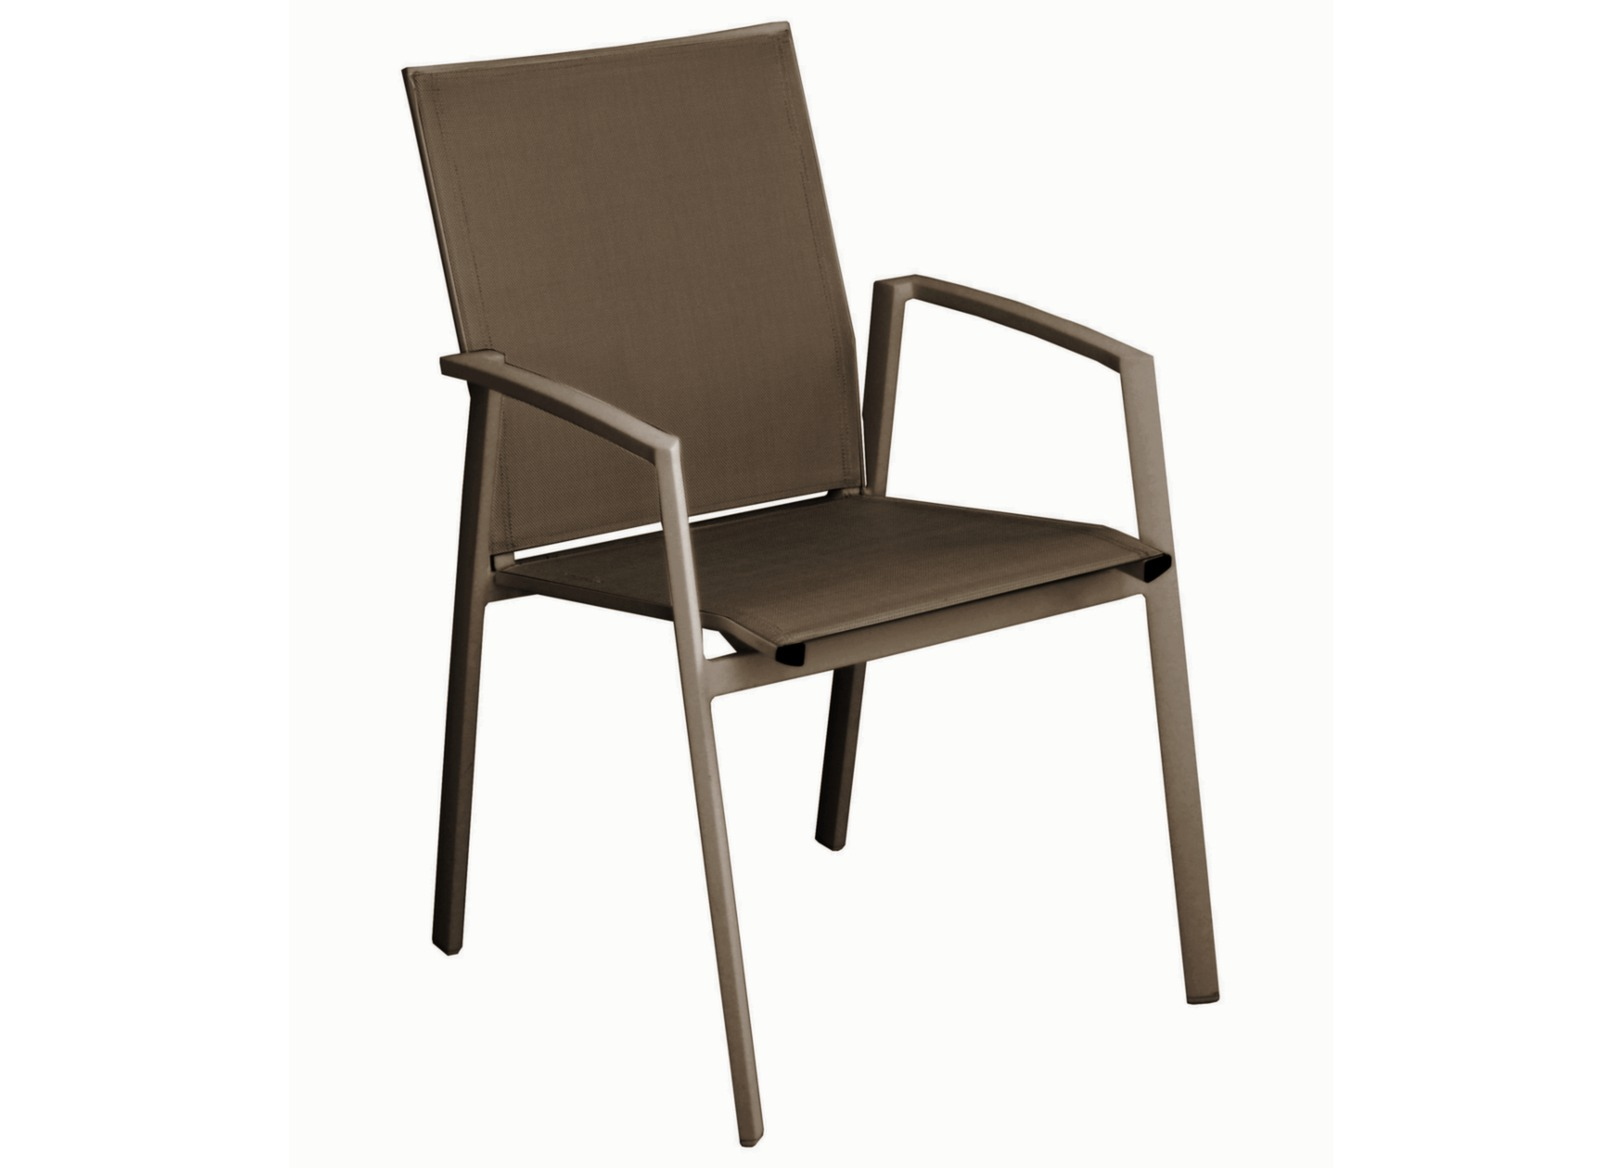 fauteuil de jardin en aluminium marron palma proloisirs. Black Bedroom Furniture Sets. Home Design Ideas